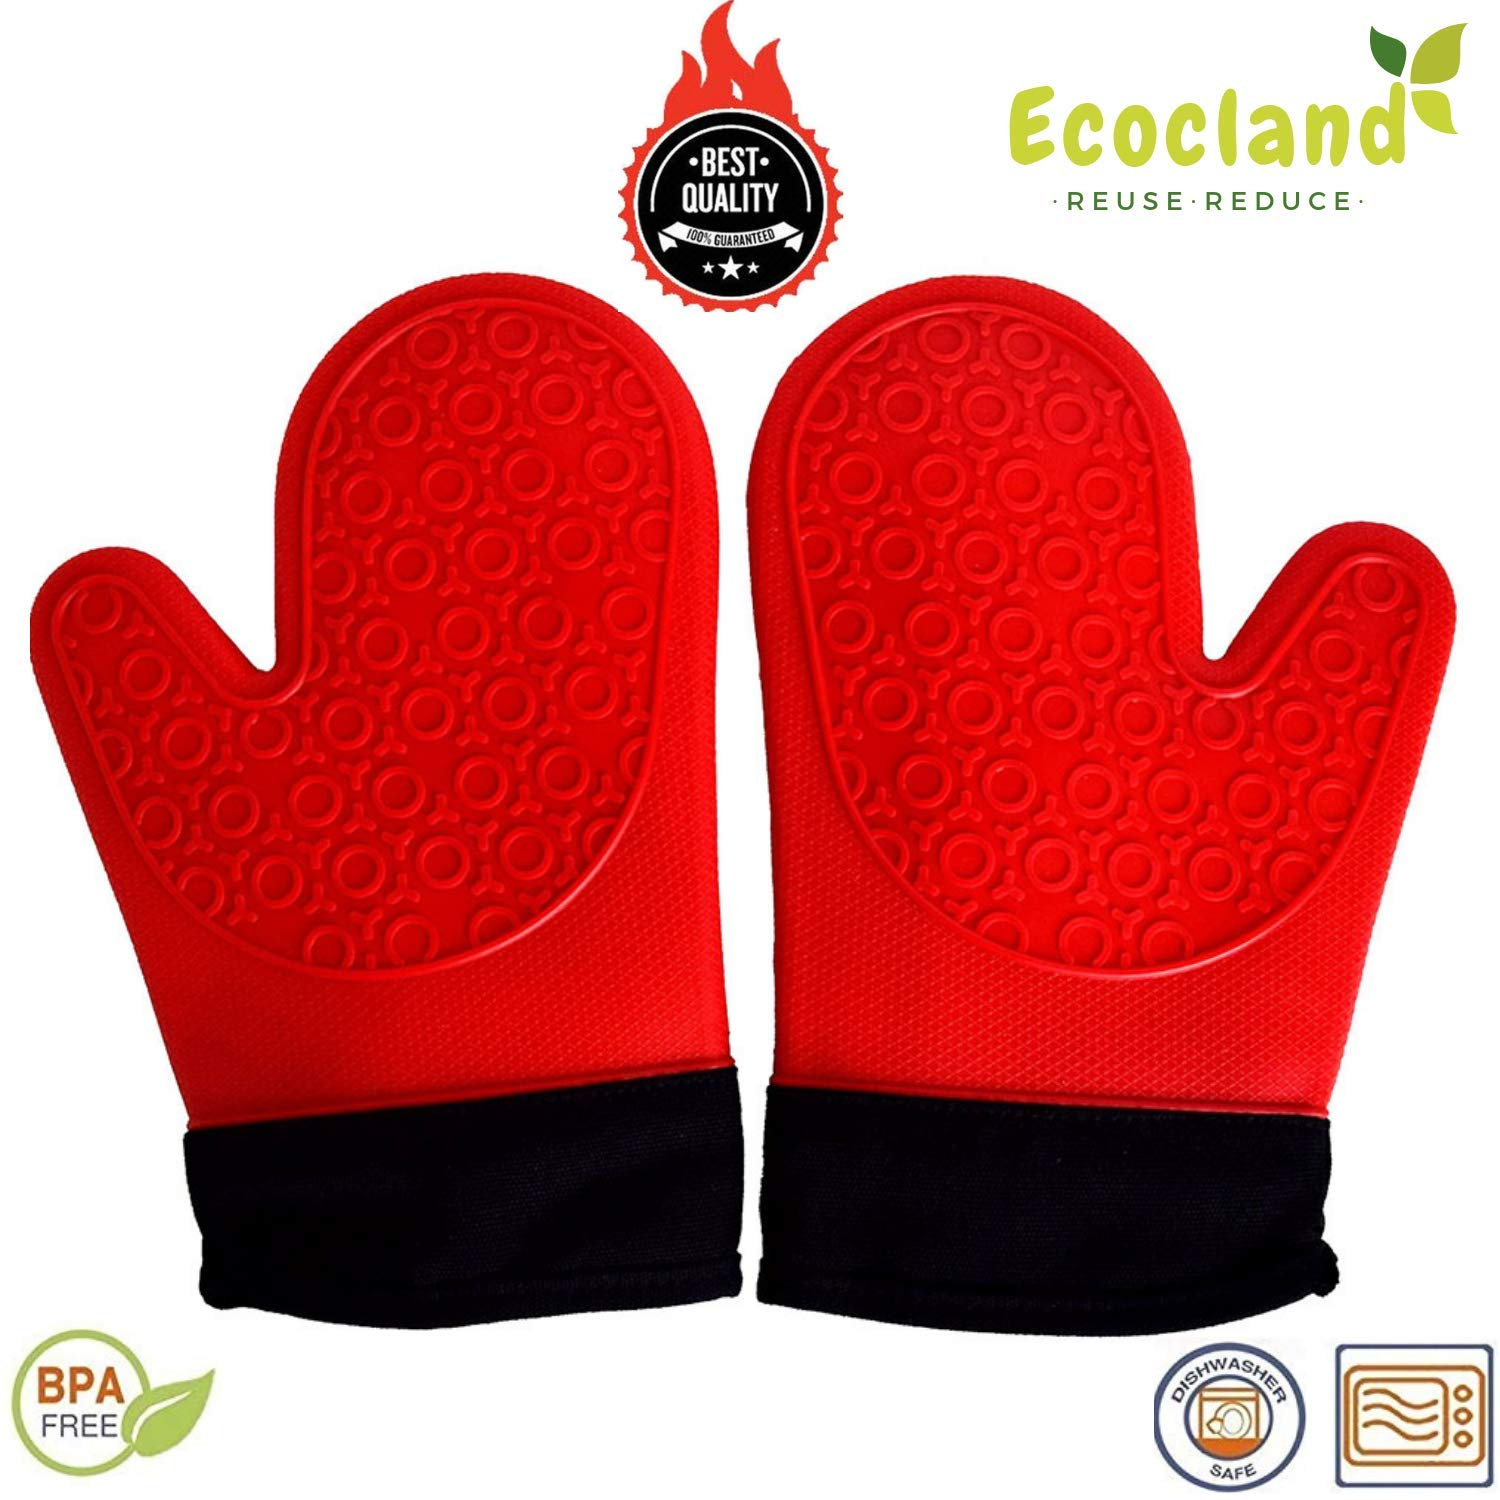 Silicone Oven Mitts, BBQ Grill Glove, 1 Pair Heat Resistant, Suitable for Pot Holder, Baking, Microwave, Grilling BBQ - with Soft Inner Lining Non Slip, Safe Use